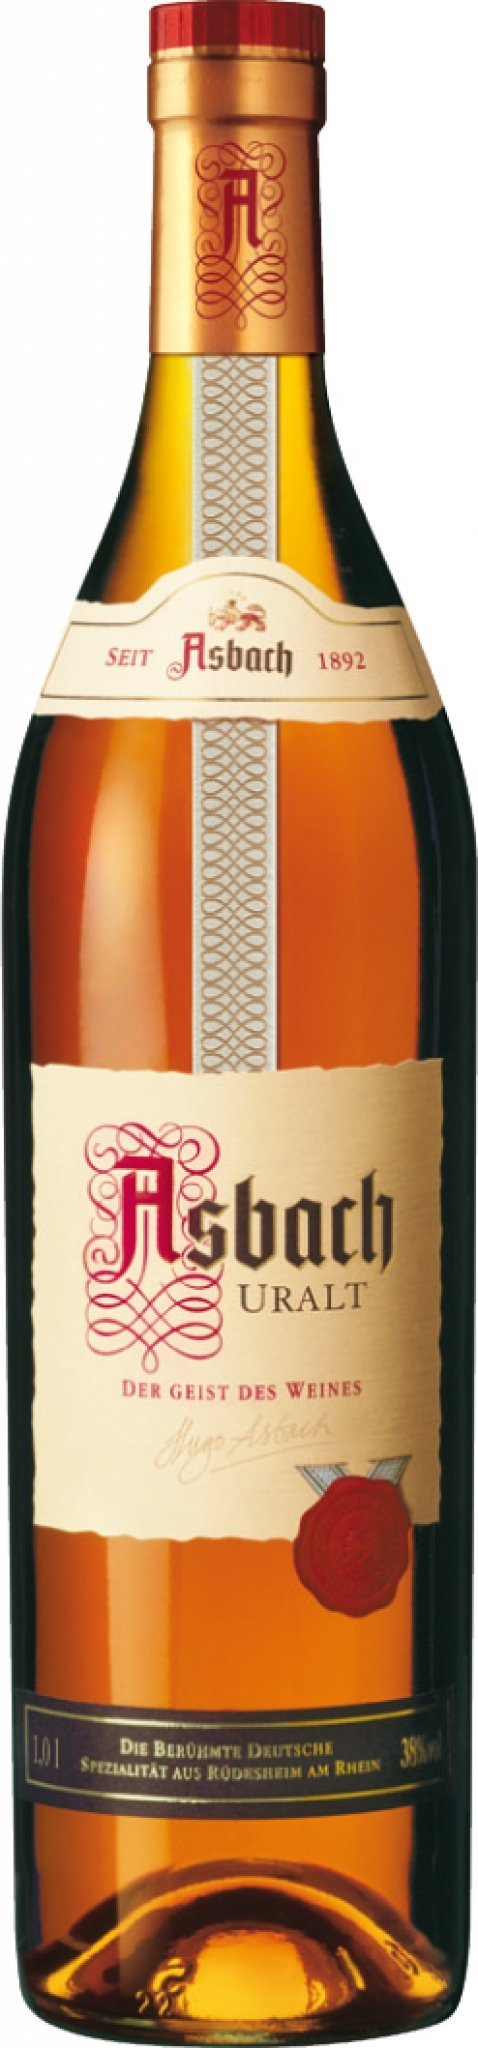 Asbach Uralt Brandy 3 Years 750ml